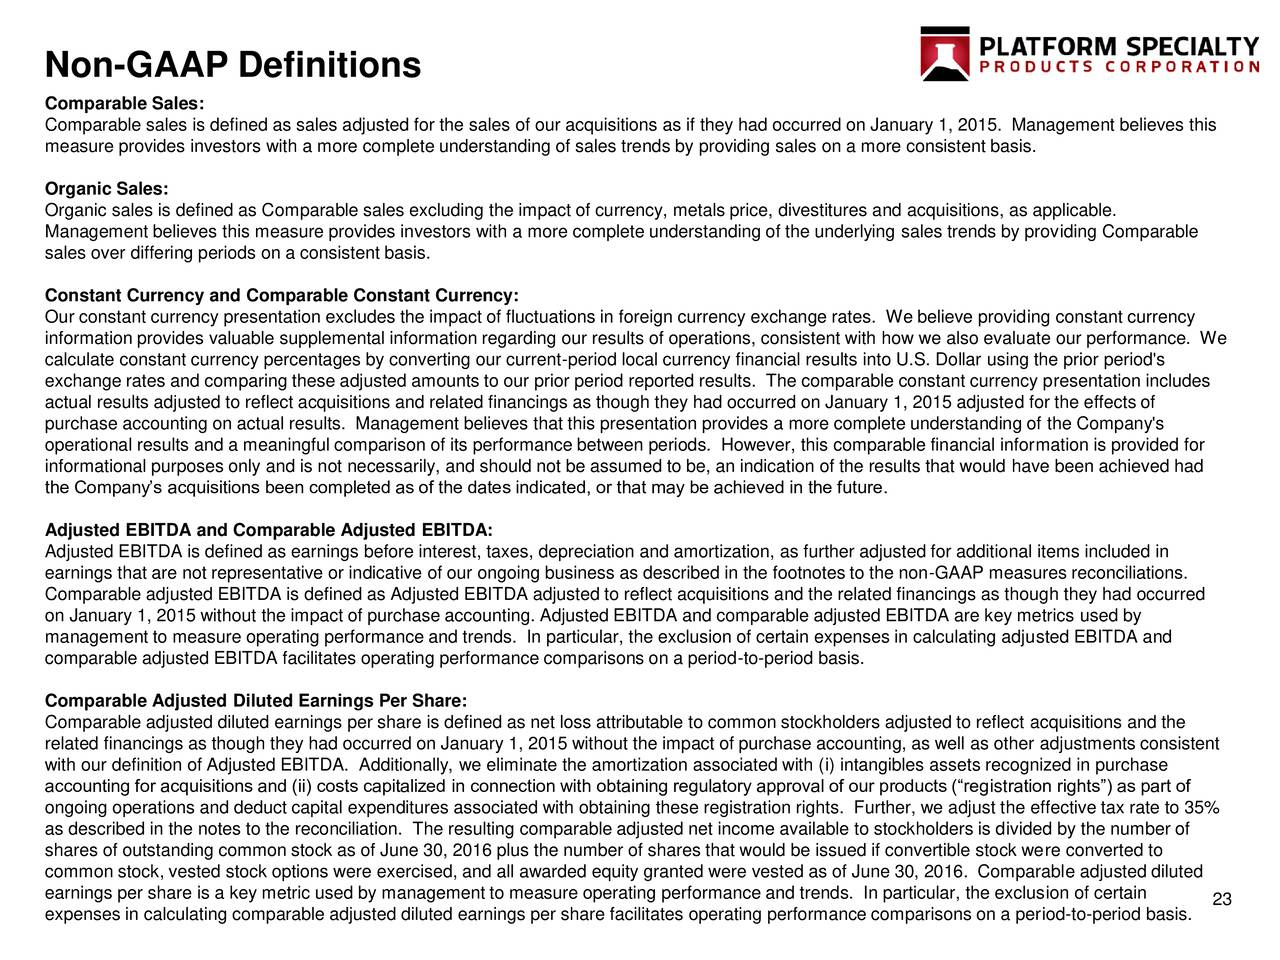 Common objection to current gaap regarding accounting for stock options